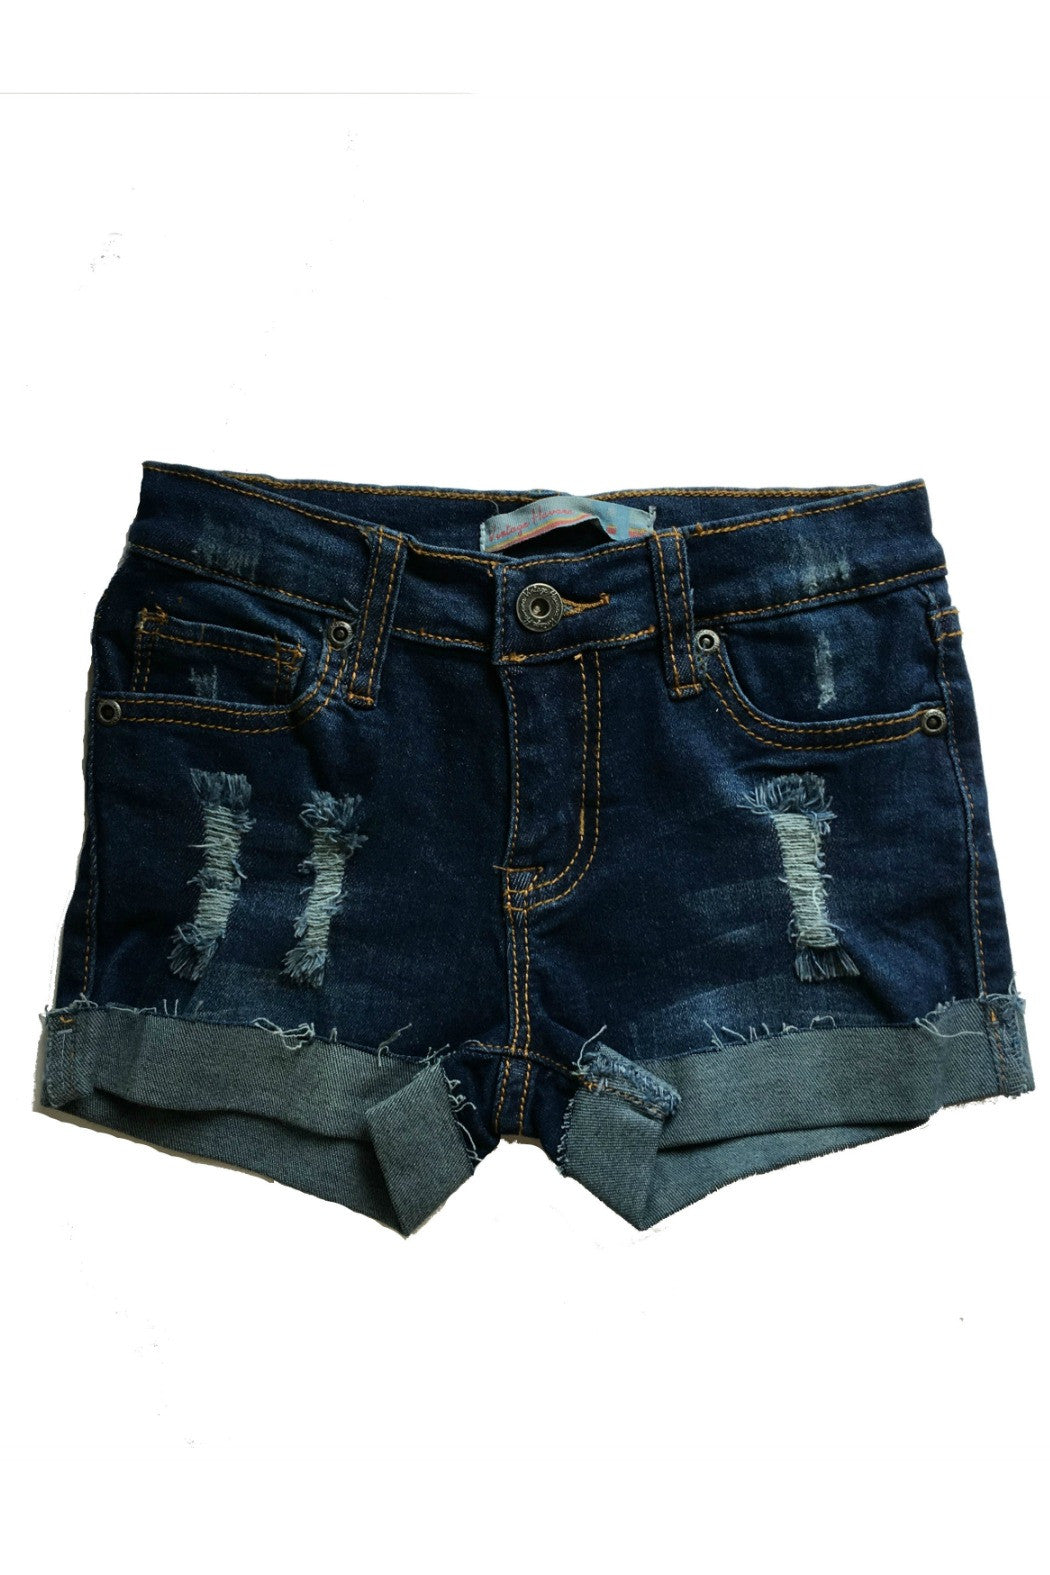 Vintage Havana Kids - Destroyed cuffed shorts - R+D Hipster Emporium | Womens & Mens Clothing - 1